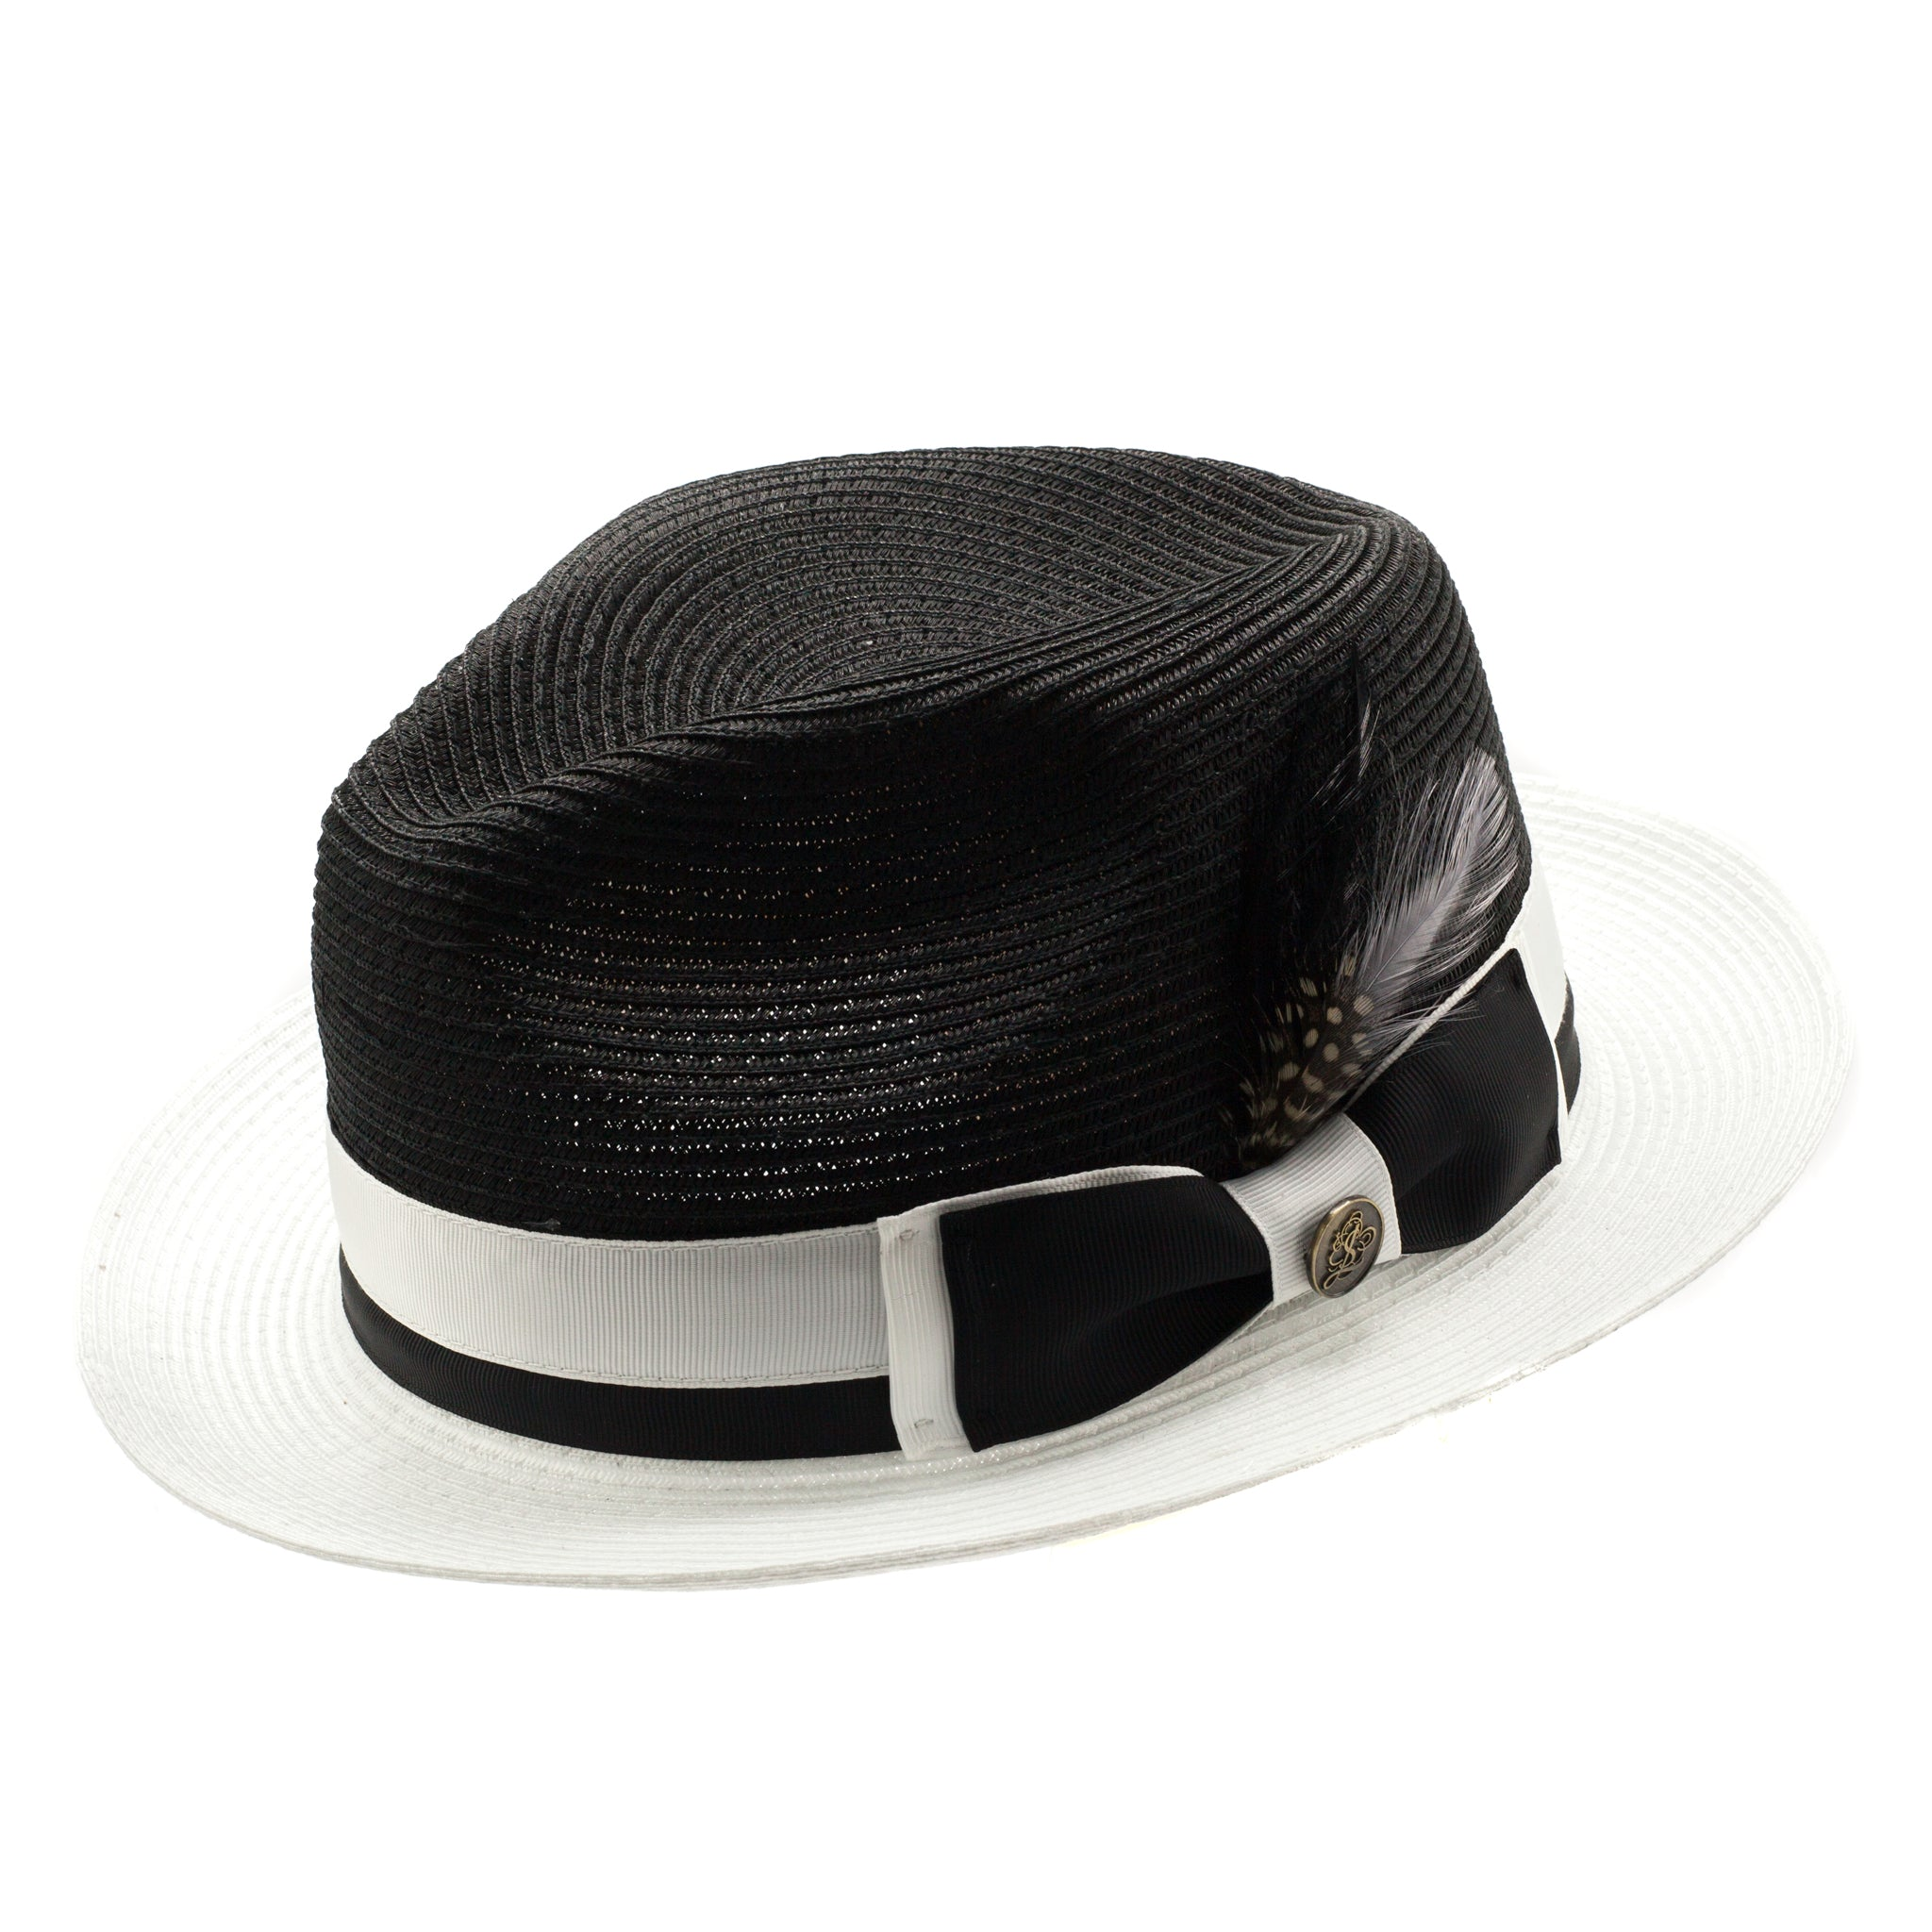 STEVEN LAND SPRING HAT WHITE/BLACK